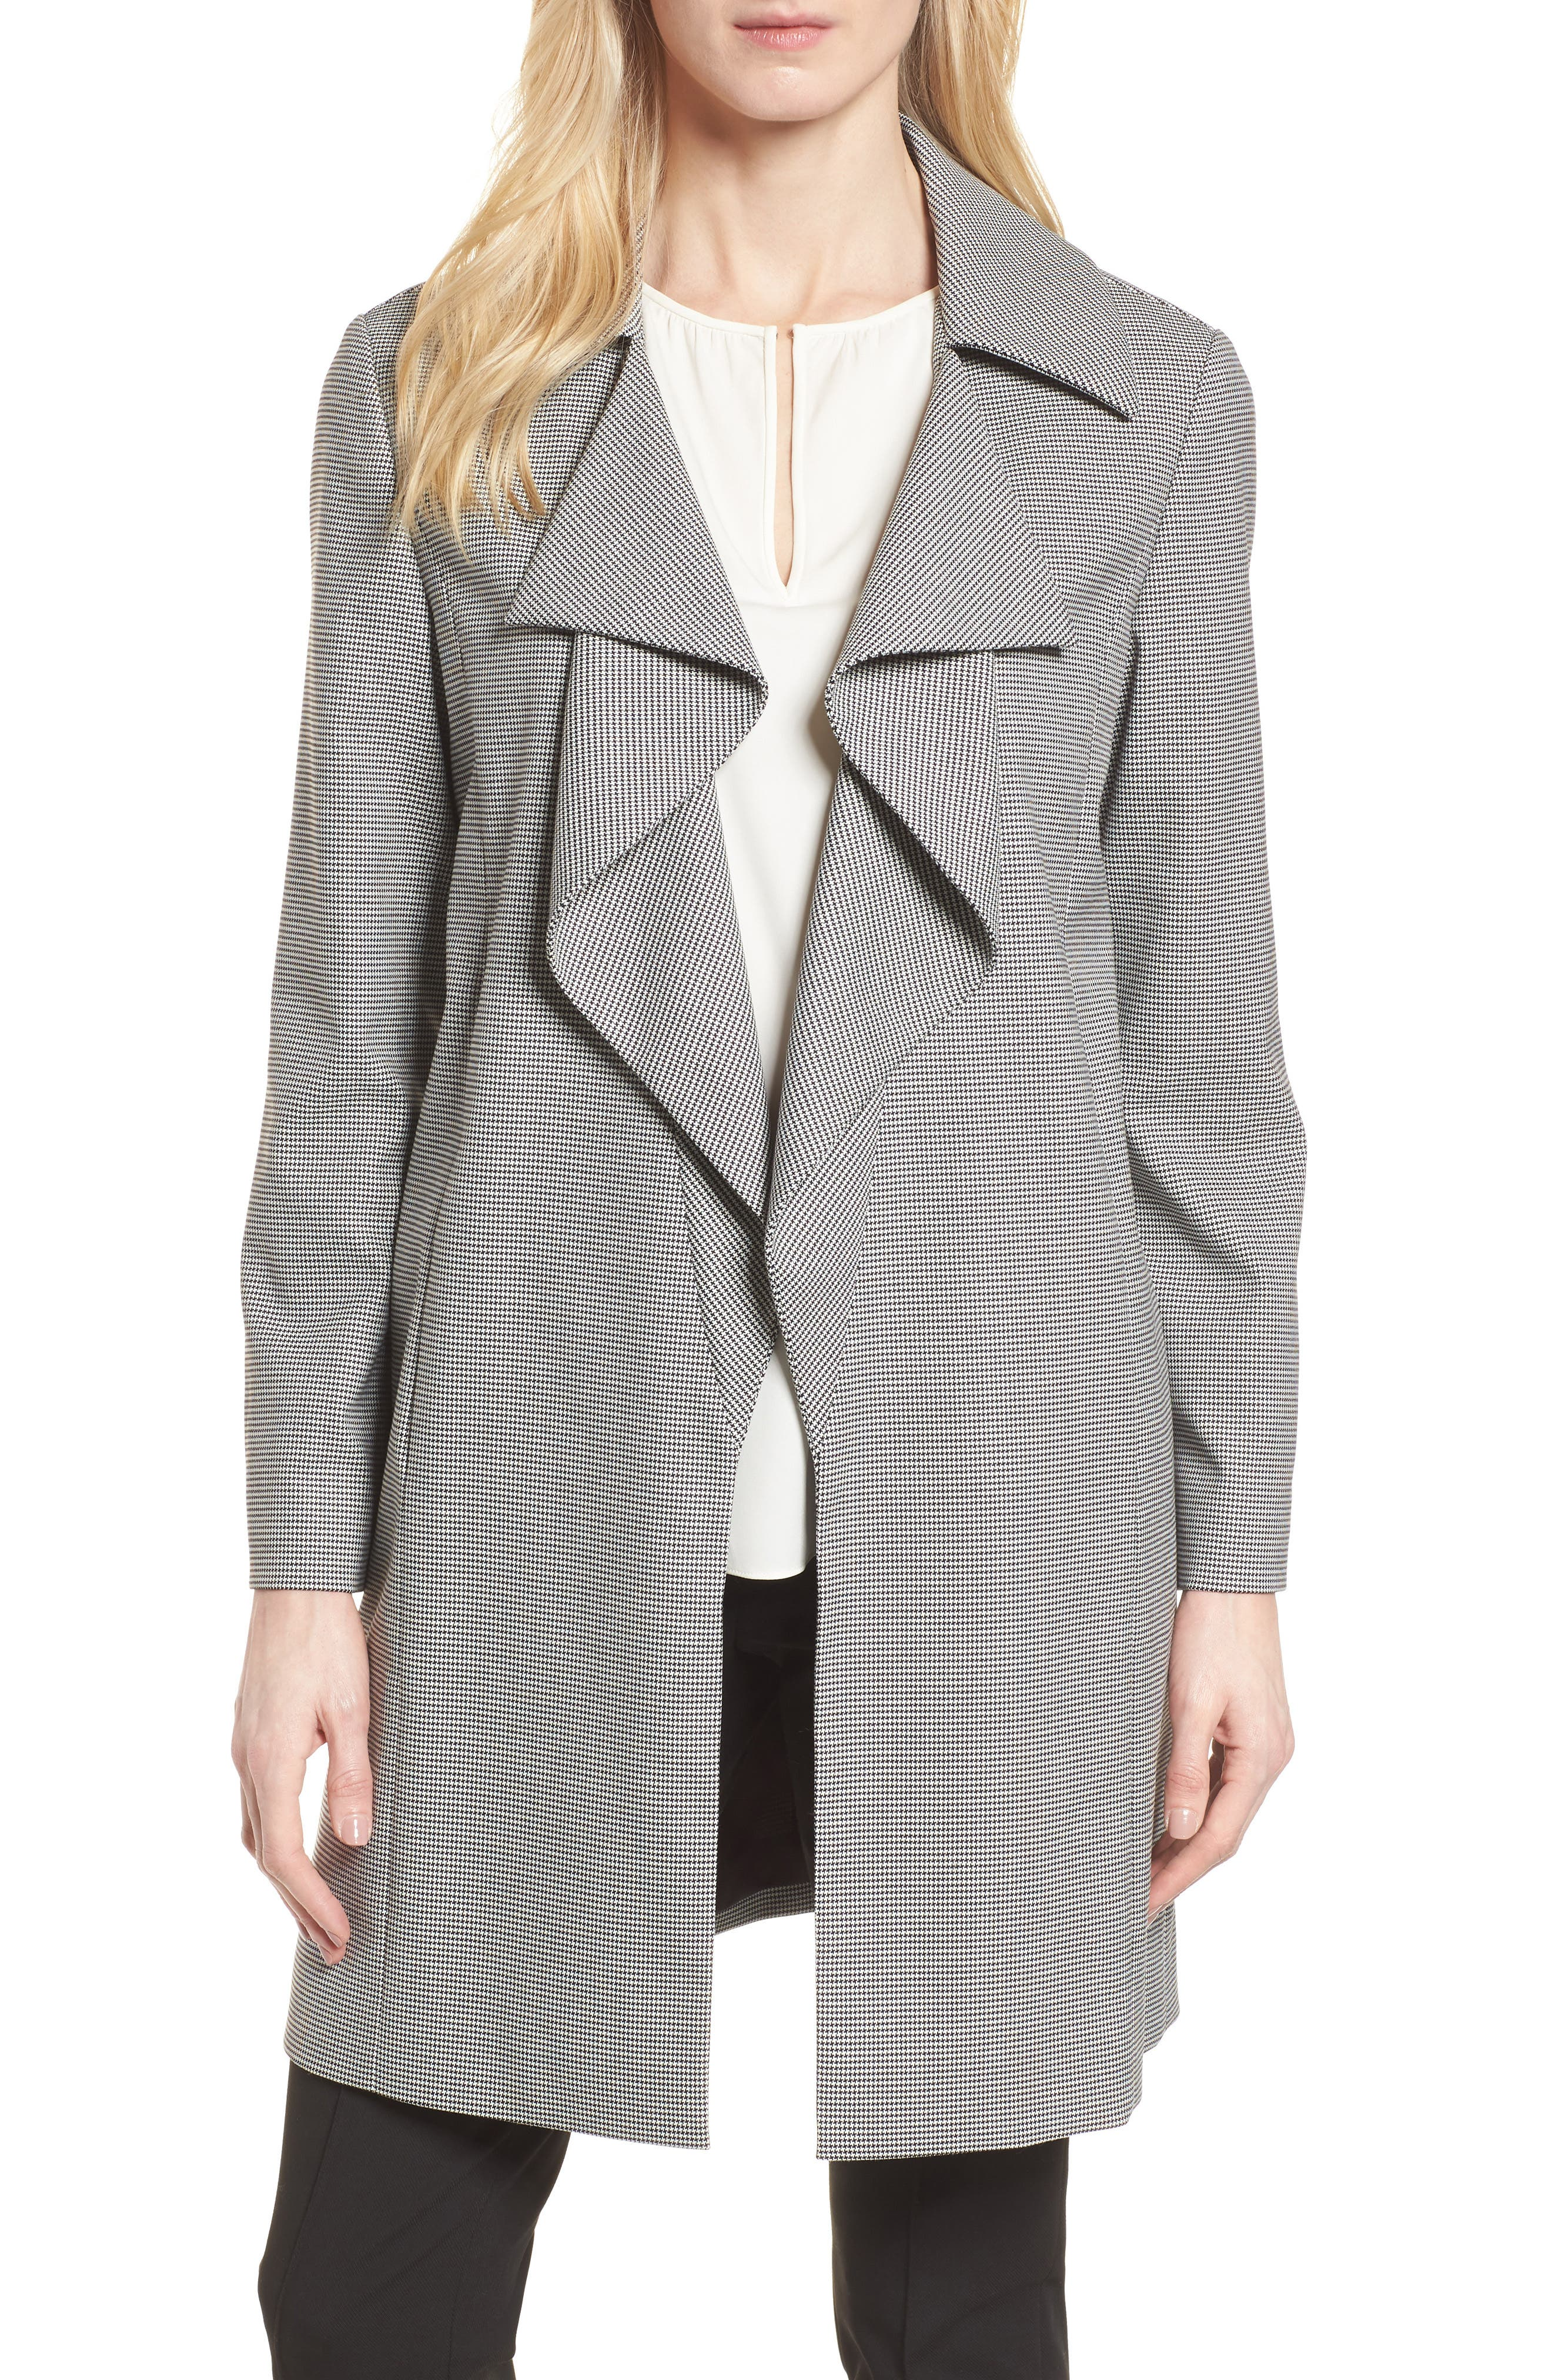 Houndstooth Open Front Jacket,                         Main,                         color, Black- White Houndstooth